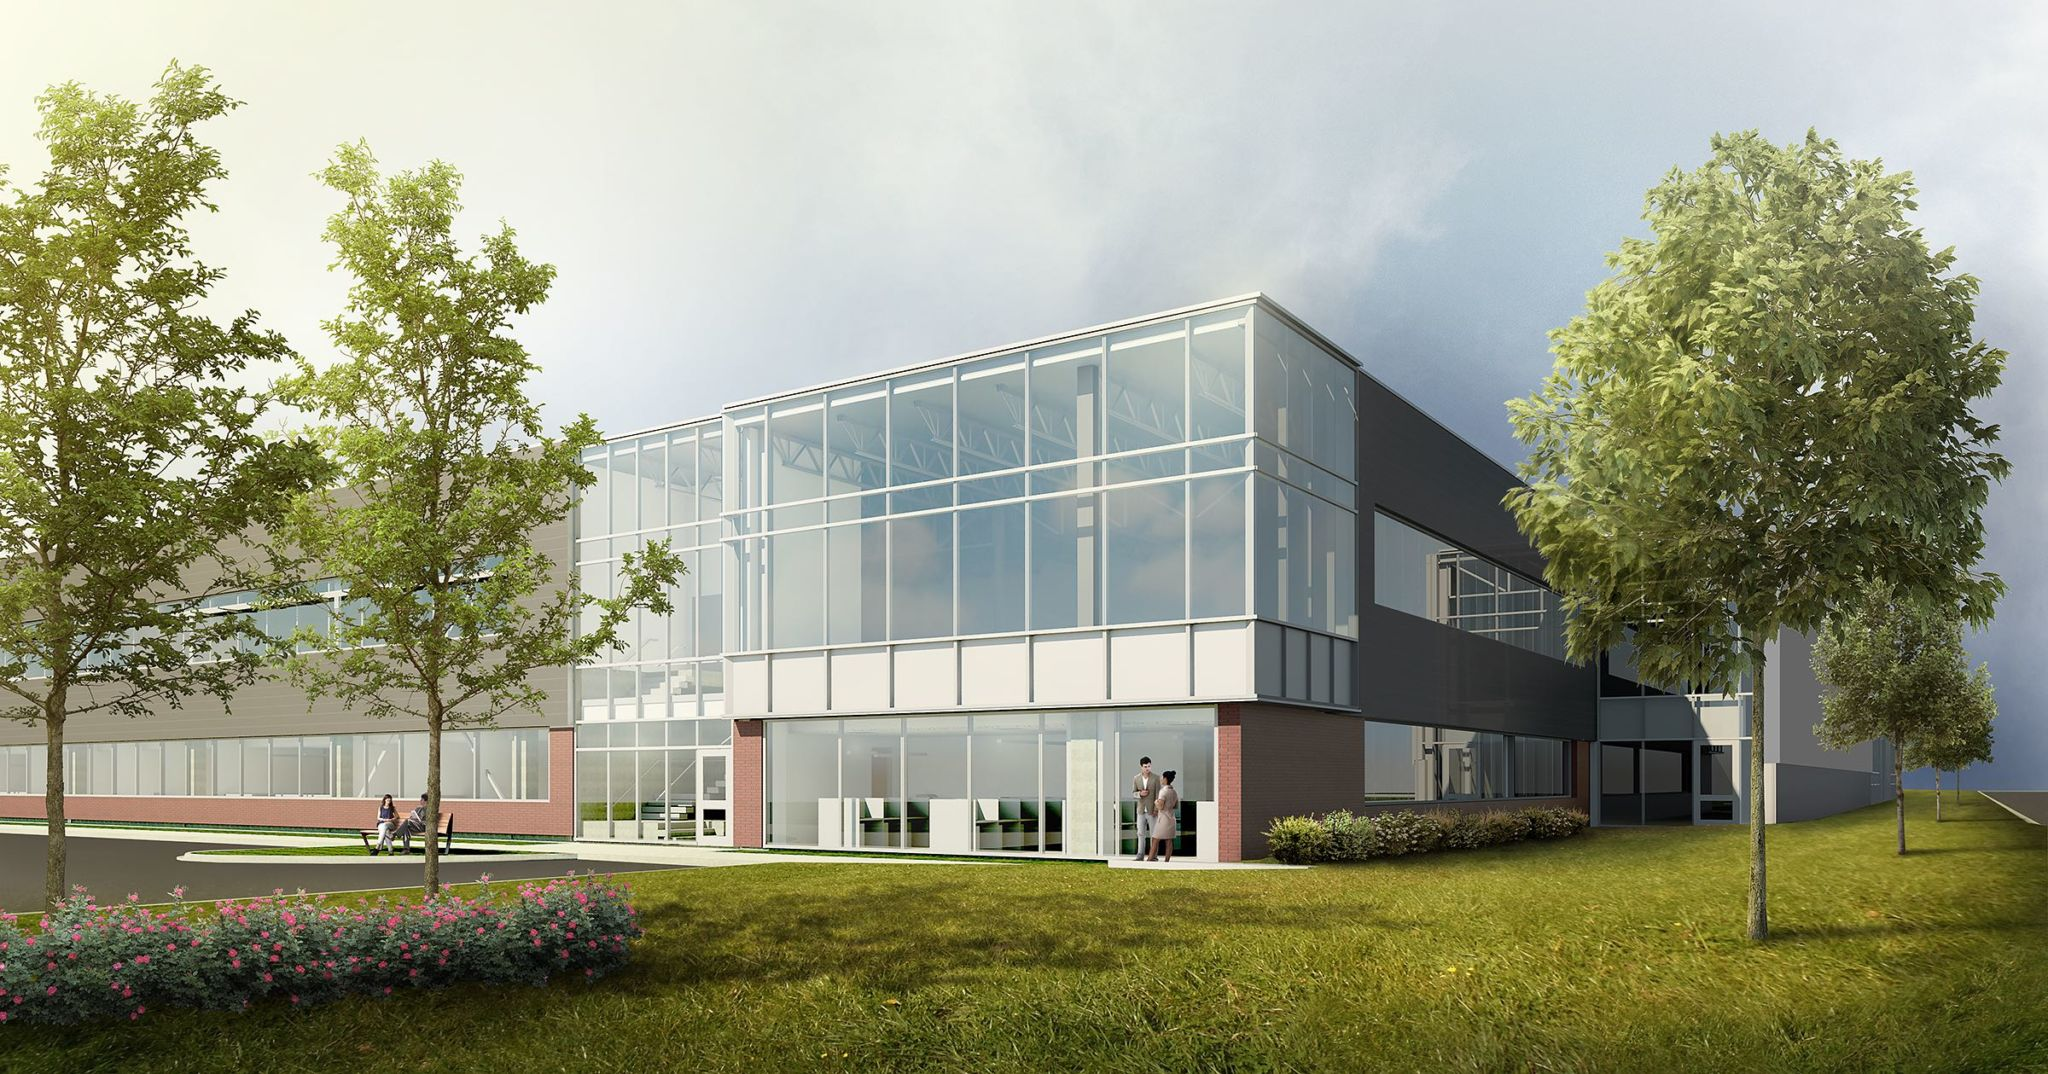 The Fraunhofer Project Centre for Biomedical Engineering & Advanced Manufacturing (BEAM) will develop novel cell manufacturing systems related to cell therapy and immunology. Photo courtesy of Diamond Schmitt Architects.